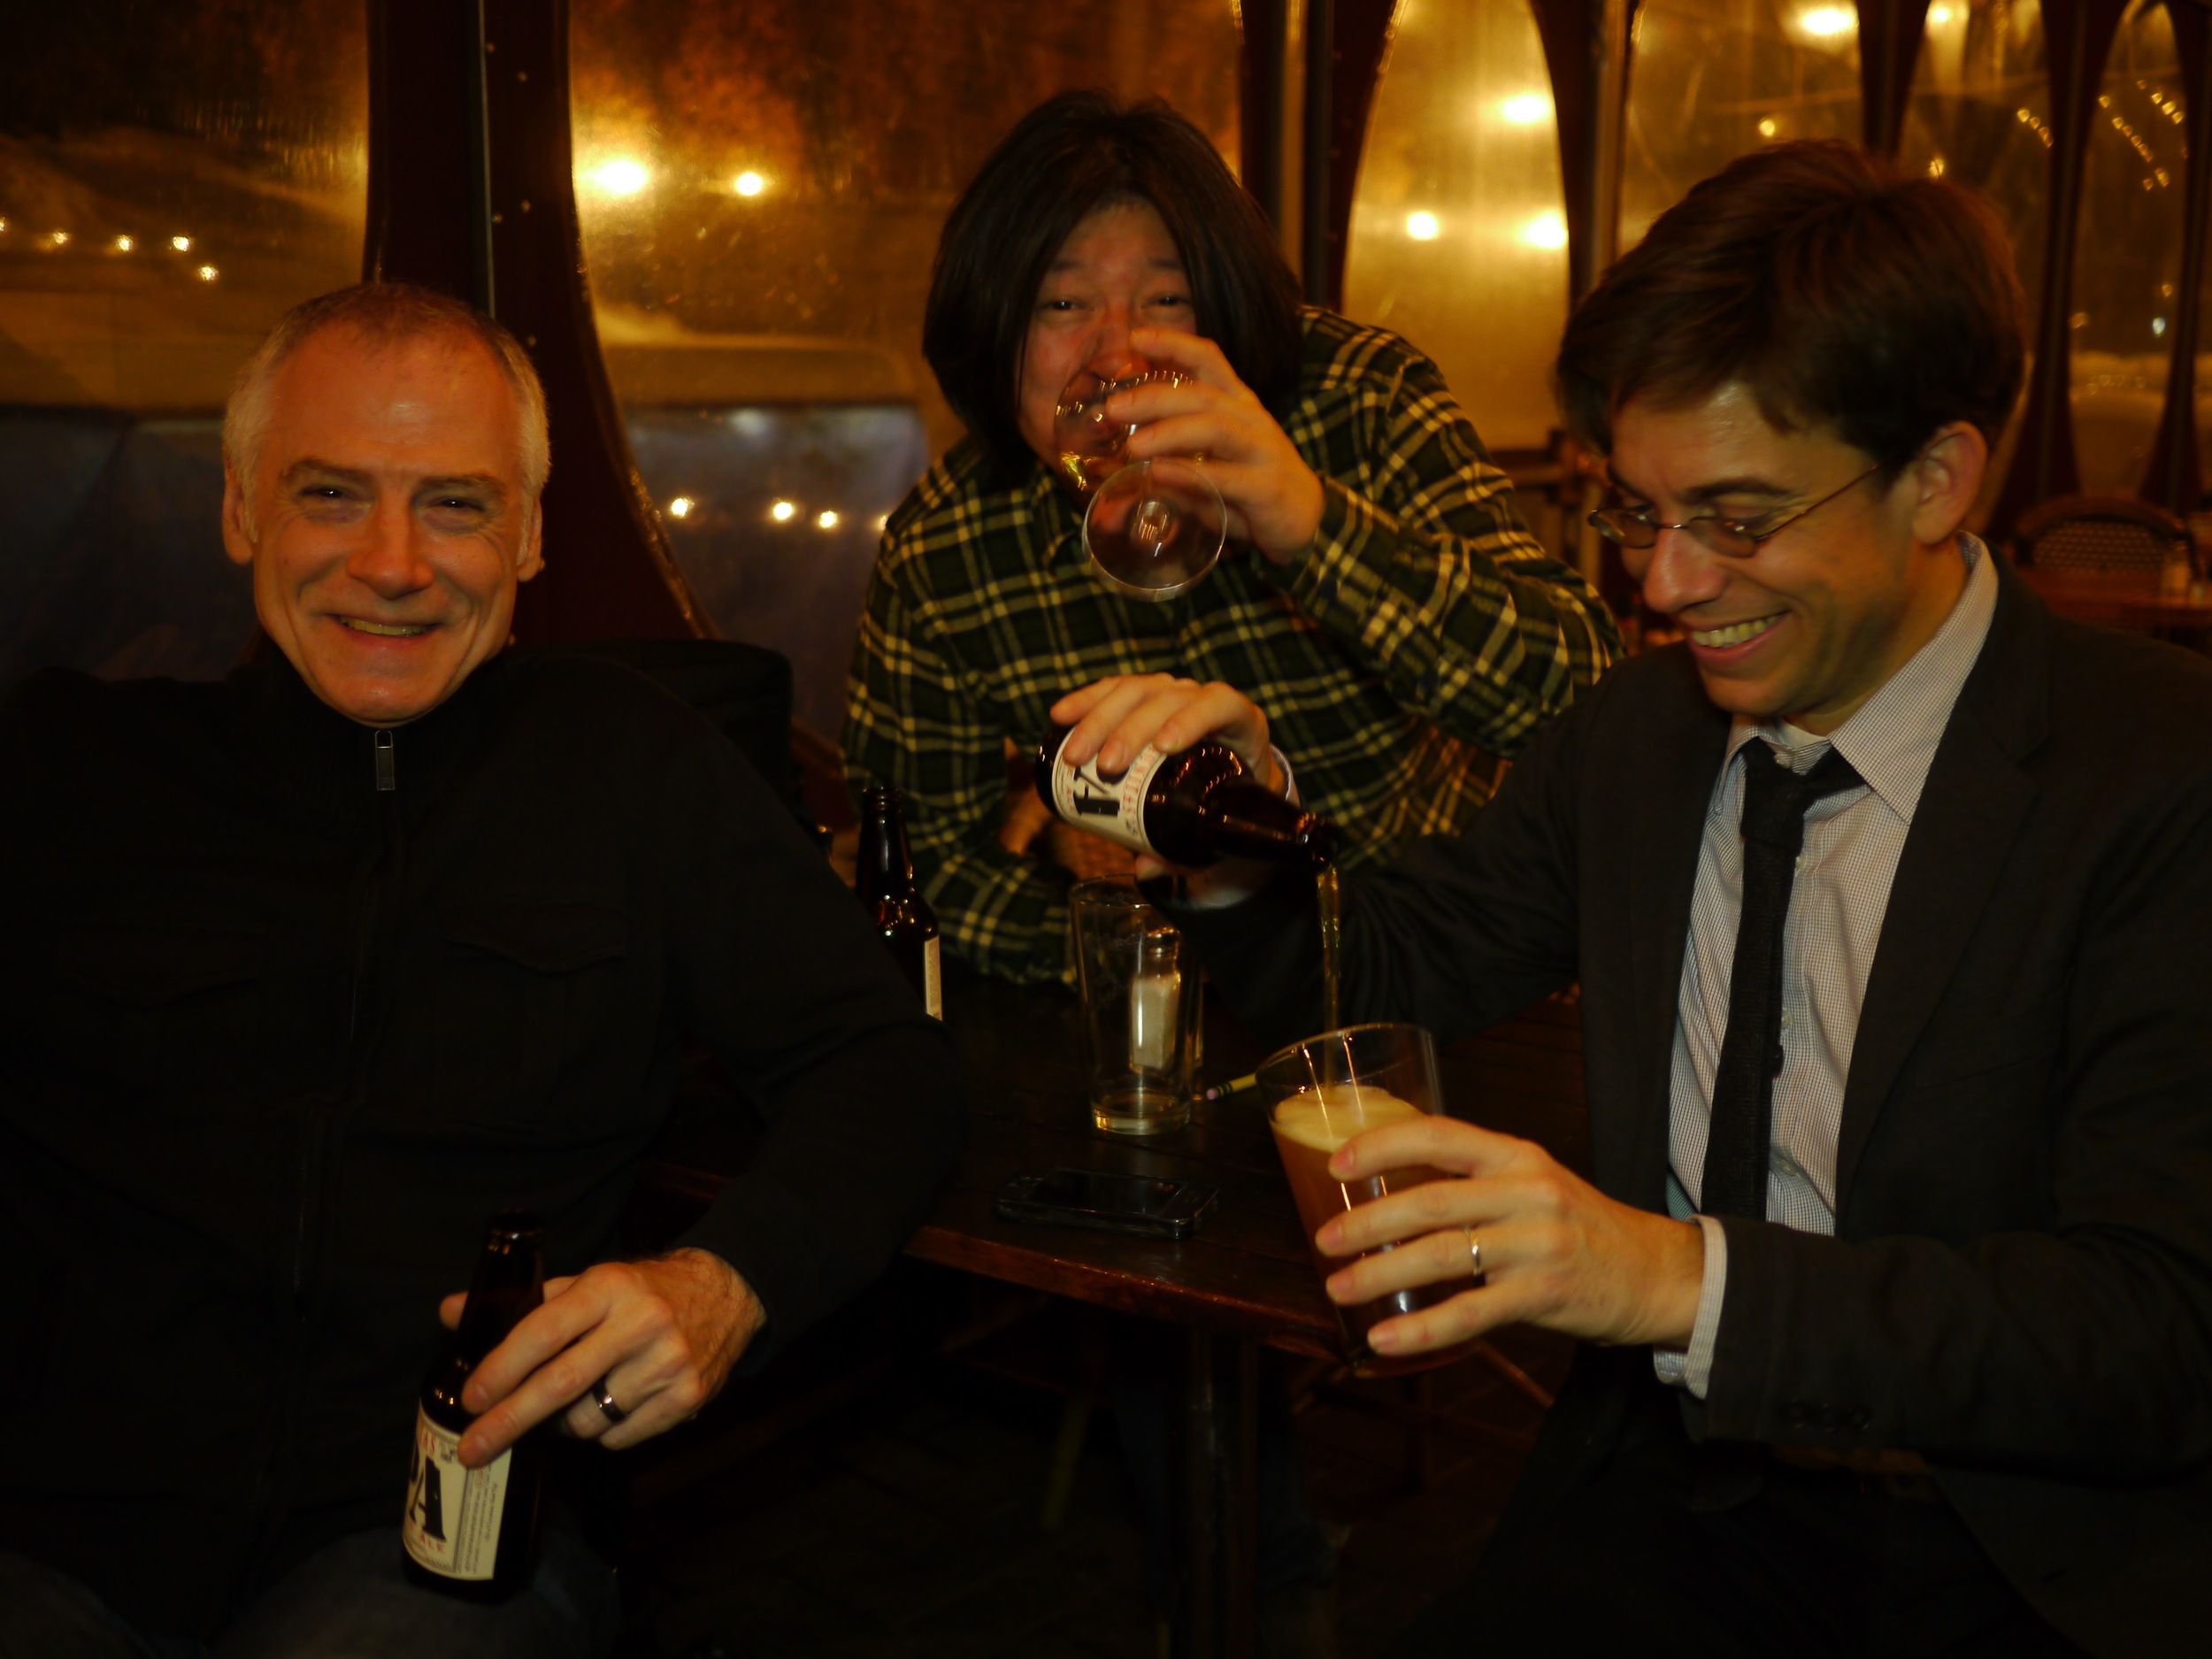 Set break at The Garden Cafe in NYC  – (L to R) Kirk Driscoll, Gaku Takanashi, Paul Hemmings.